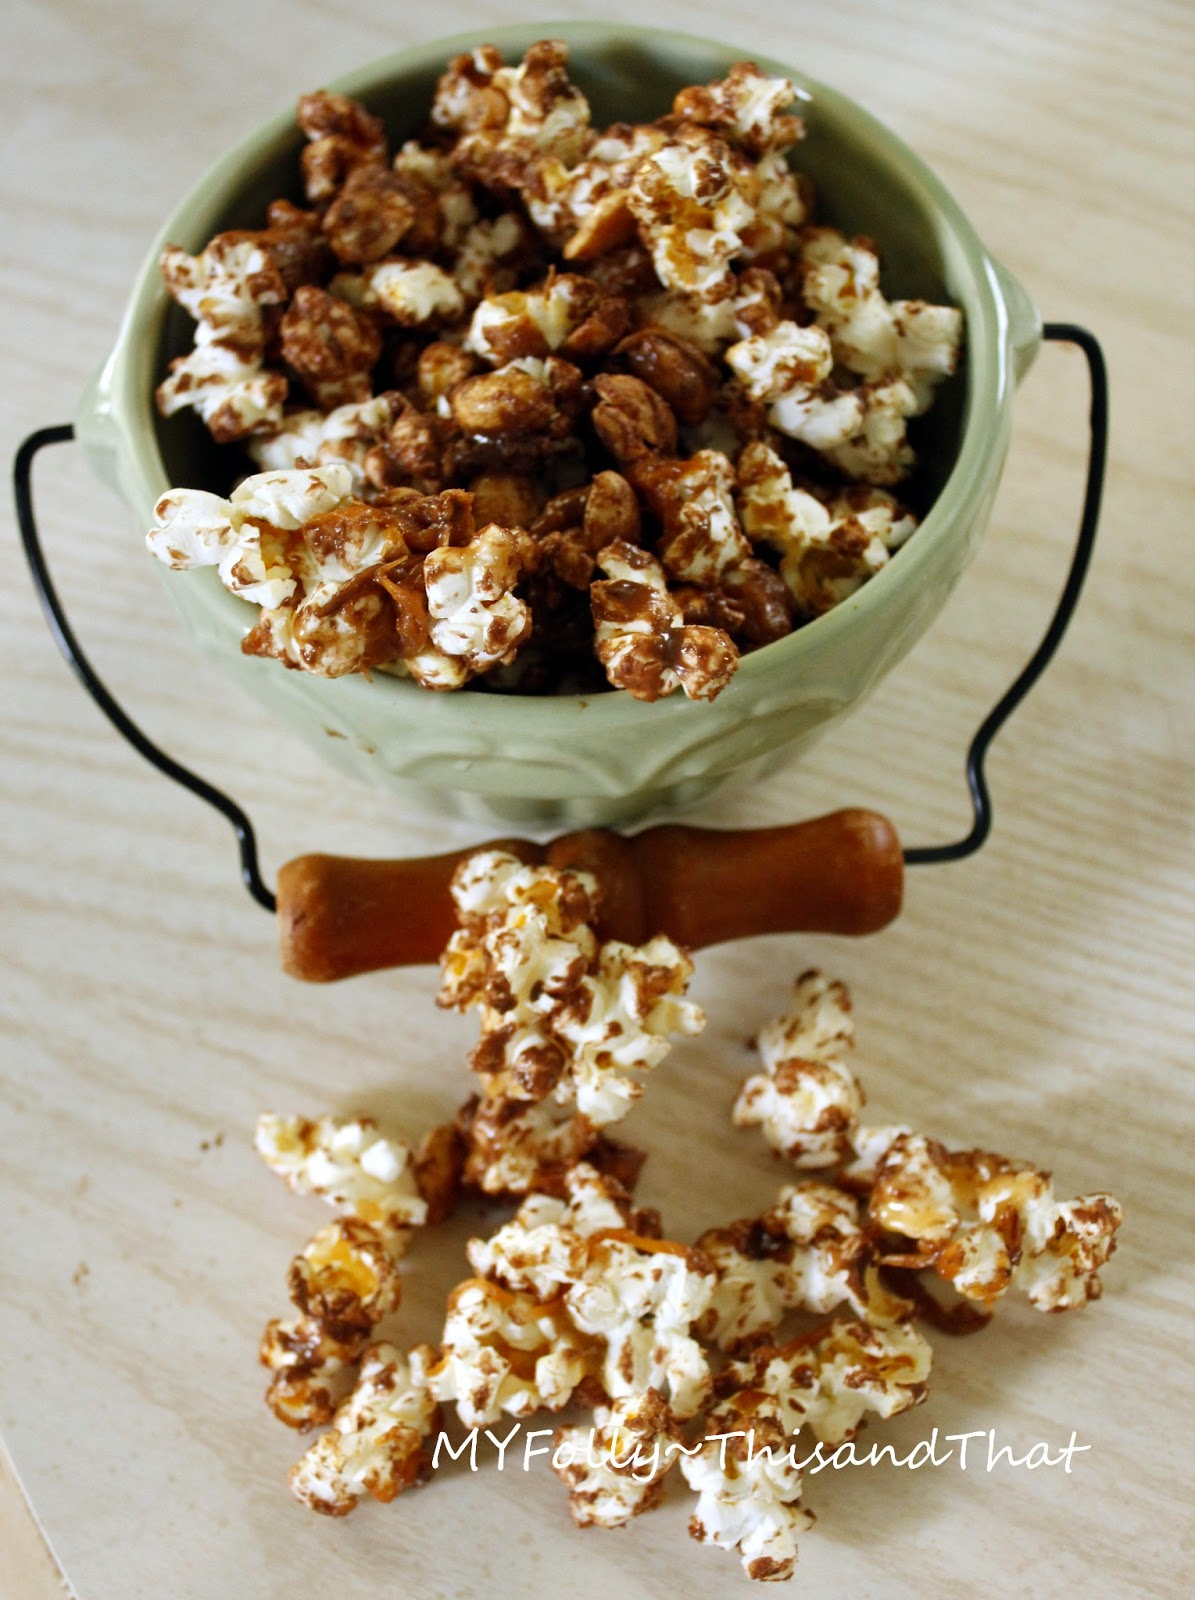 This and that: Peanut Butter Chocolate Caramel Corn